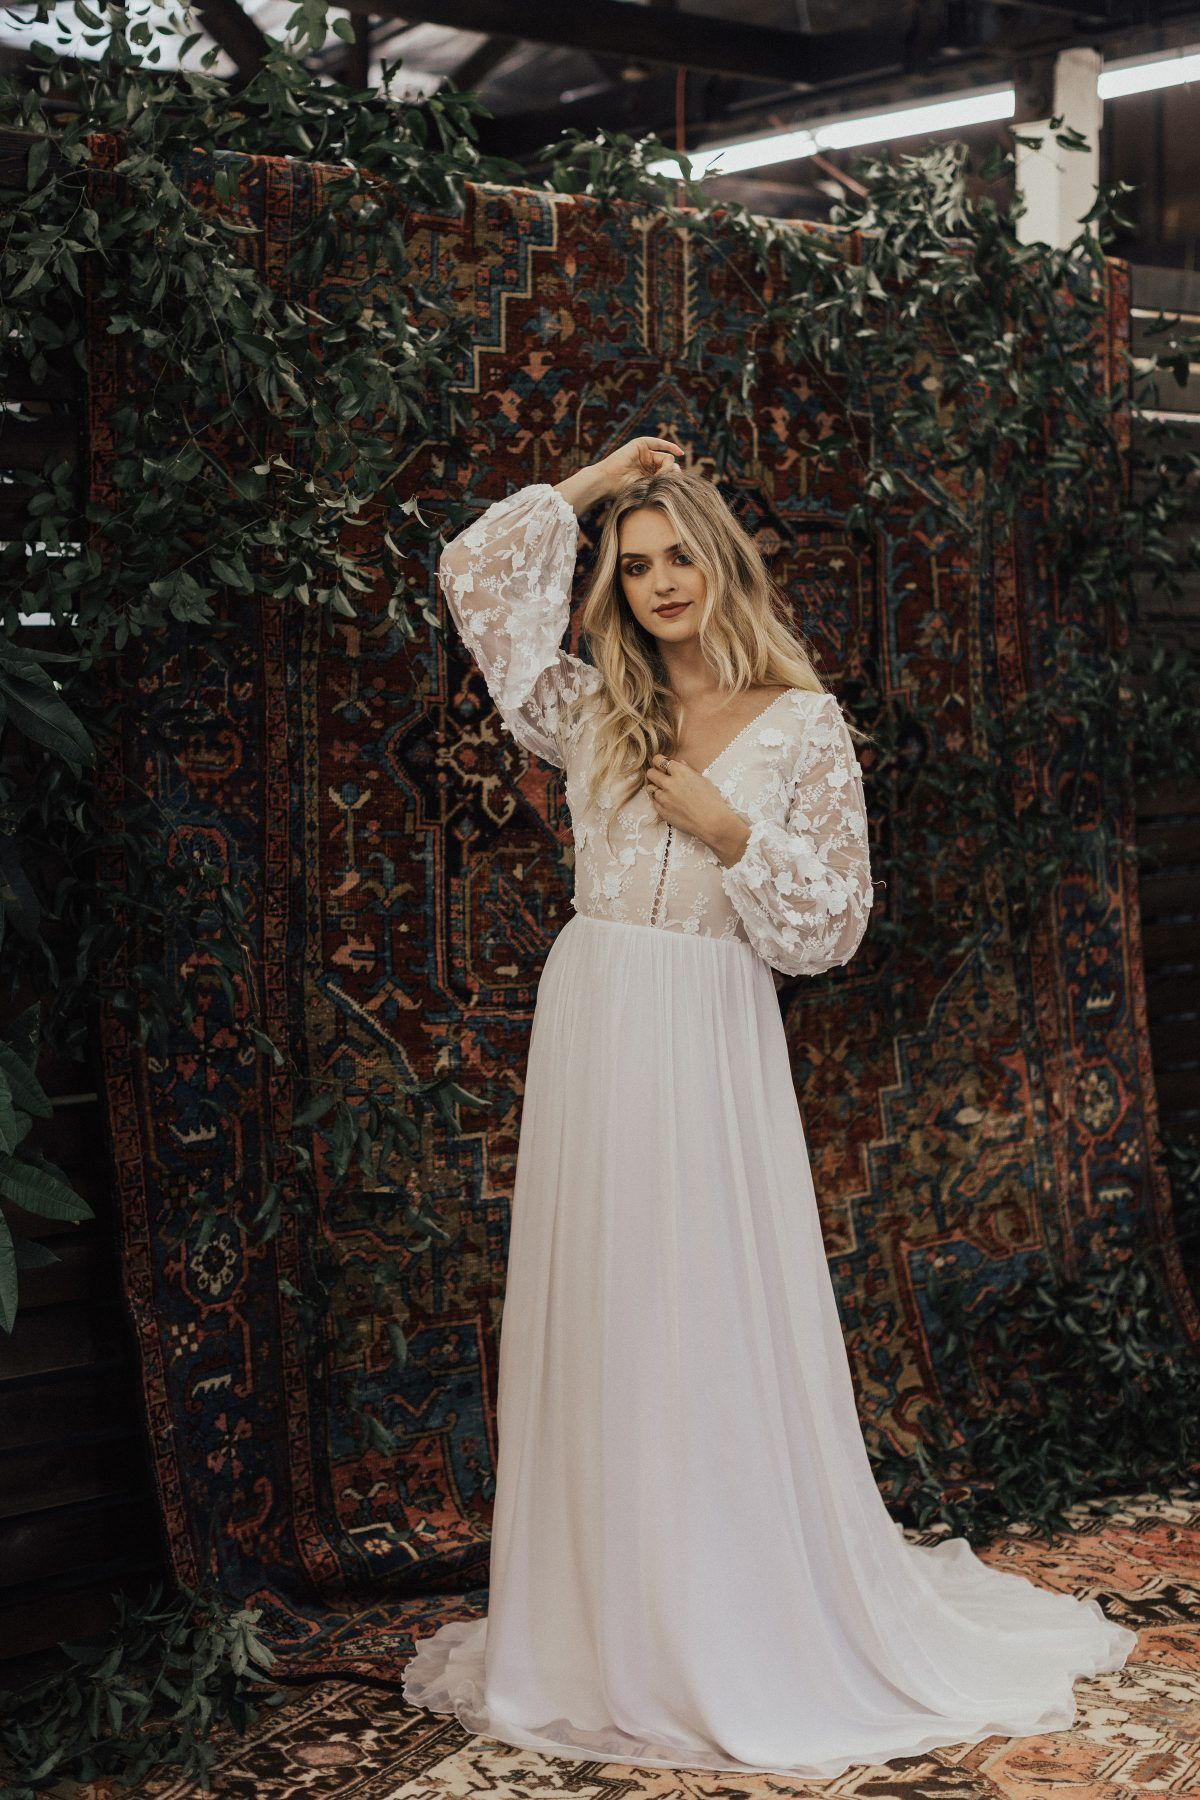 Yaya Lace And Silk Wedding Dress Silk Chiffon Wedding Dress Wedding Dress Long Sleeve Casual Wedding Dress